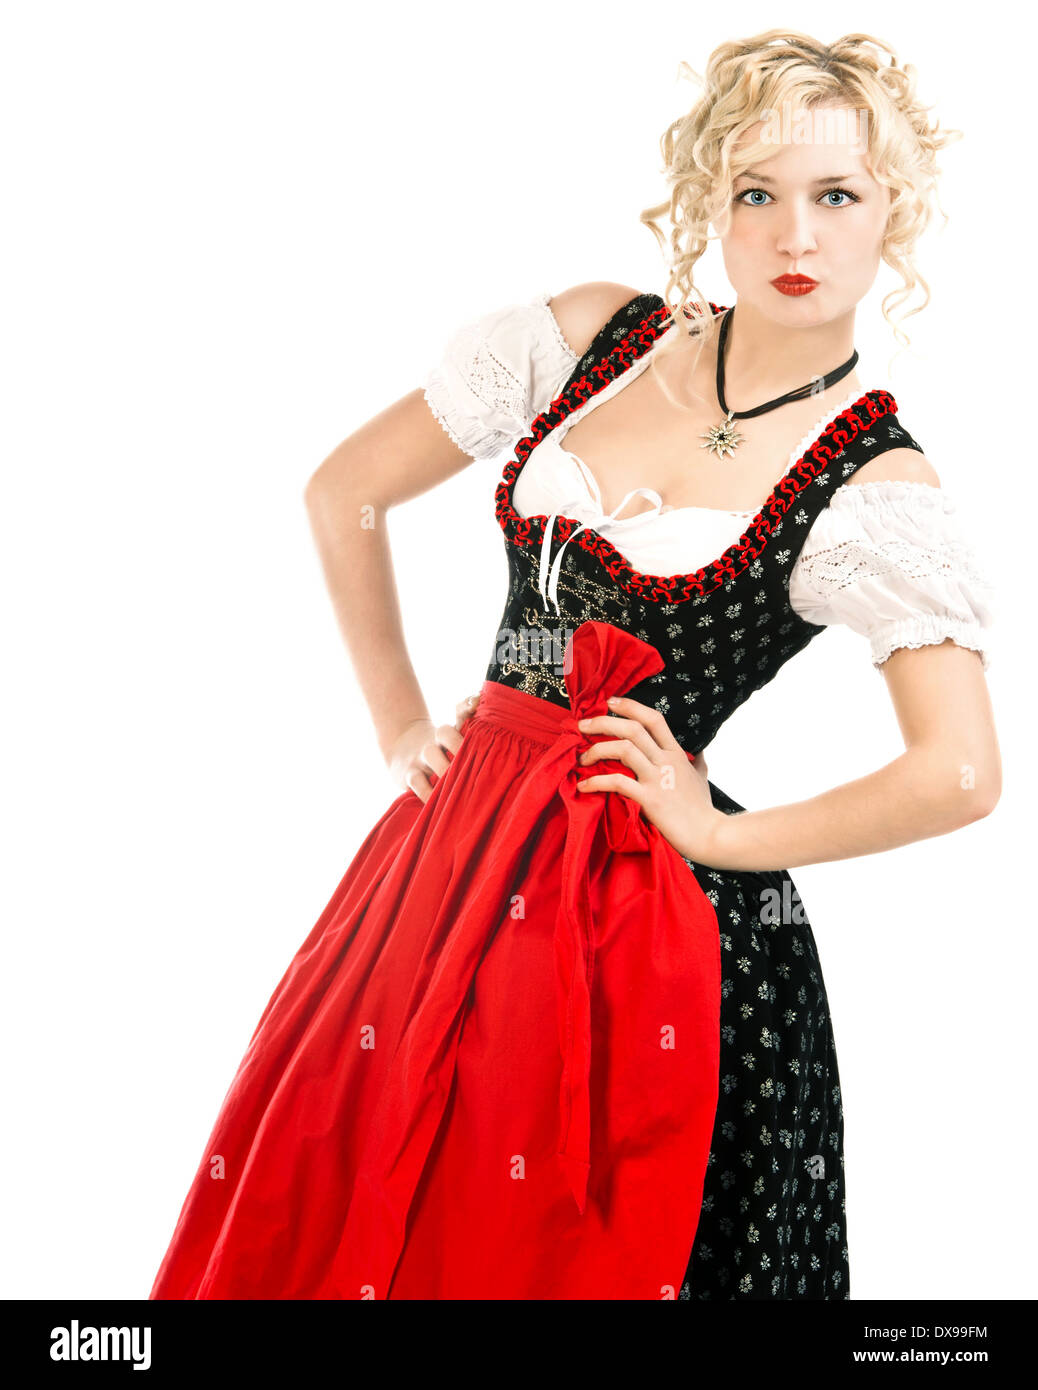 german woman in typical bavarian dress dirndl on white background. Oktoberfest - Stock Image